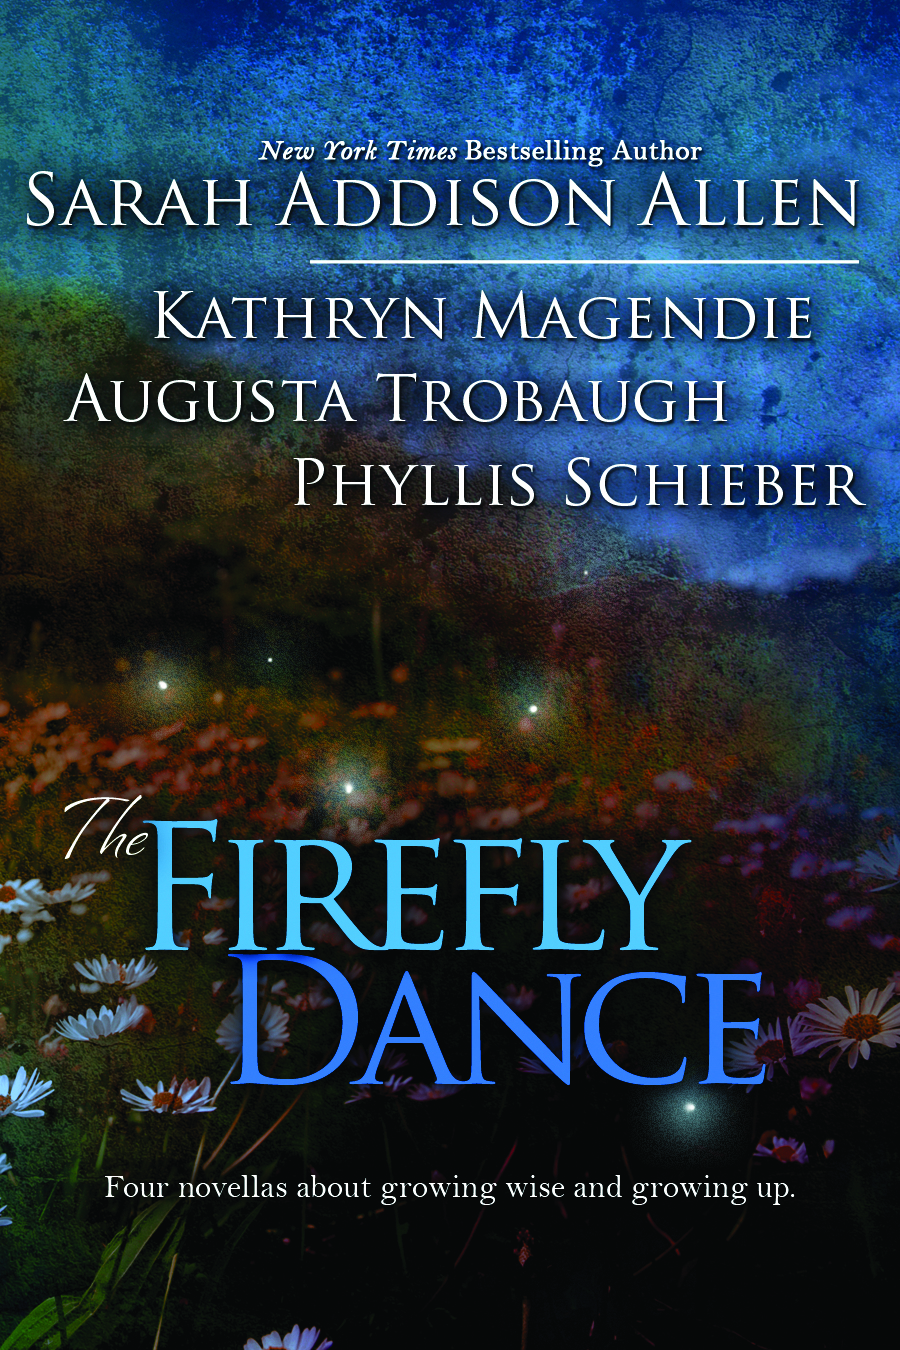 The Firefly Dance by Sarah Addison Allen, Et Al  Amazon  |  Goodreads